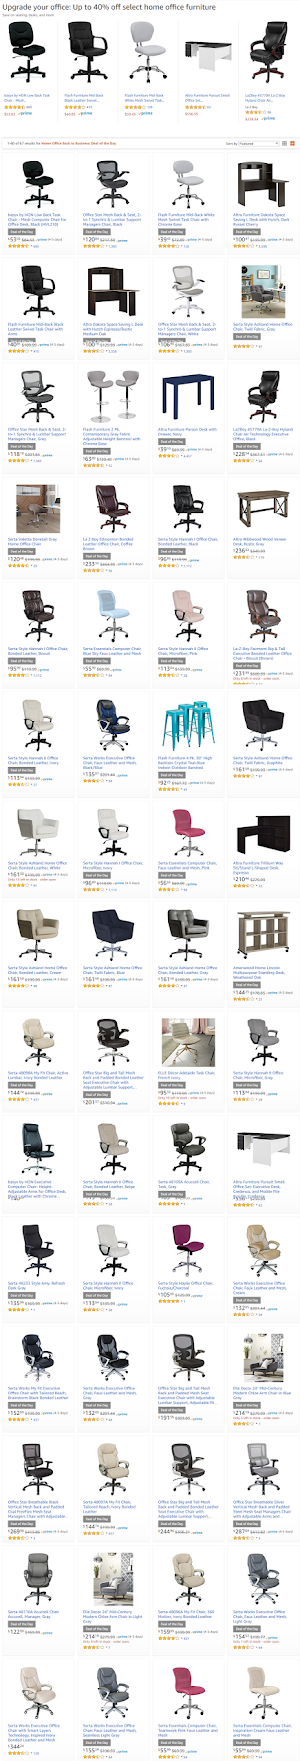 40% Off - Home office furniture amazon deals of the day